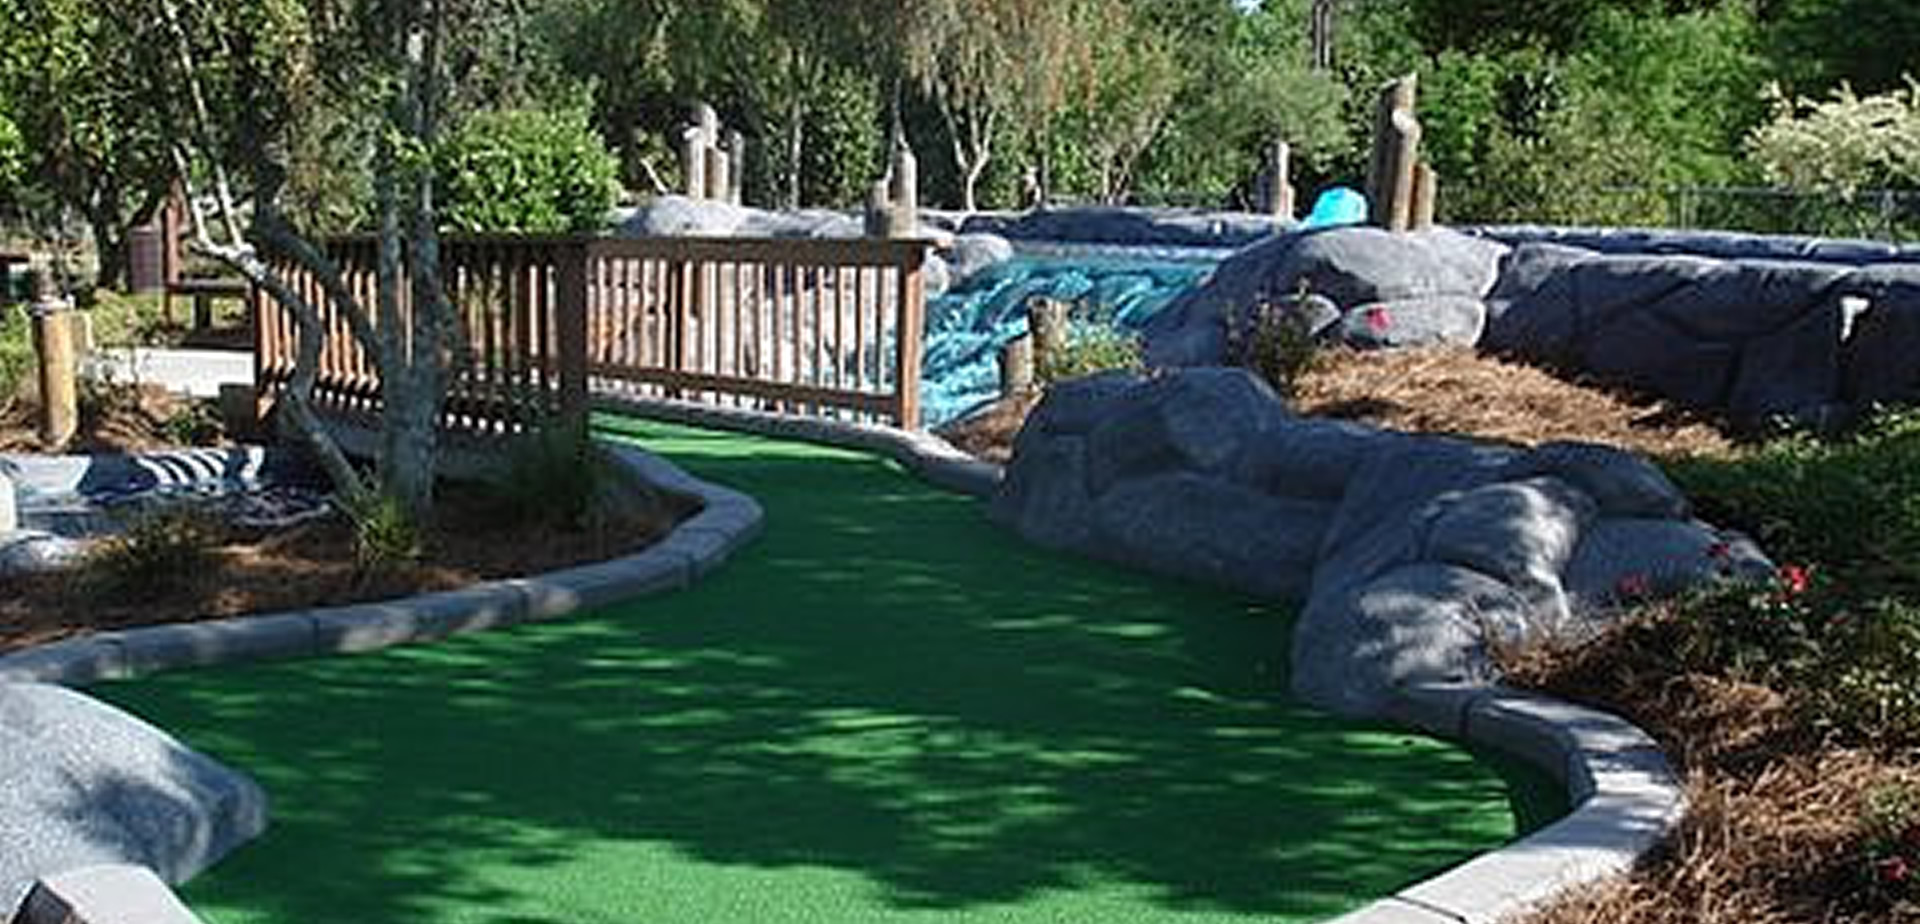 frankies fun park mini golf remodel